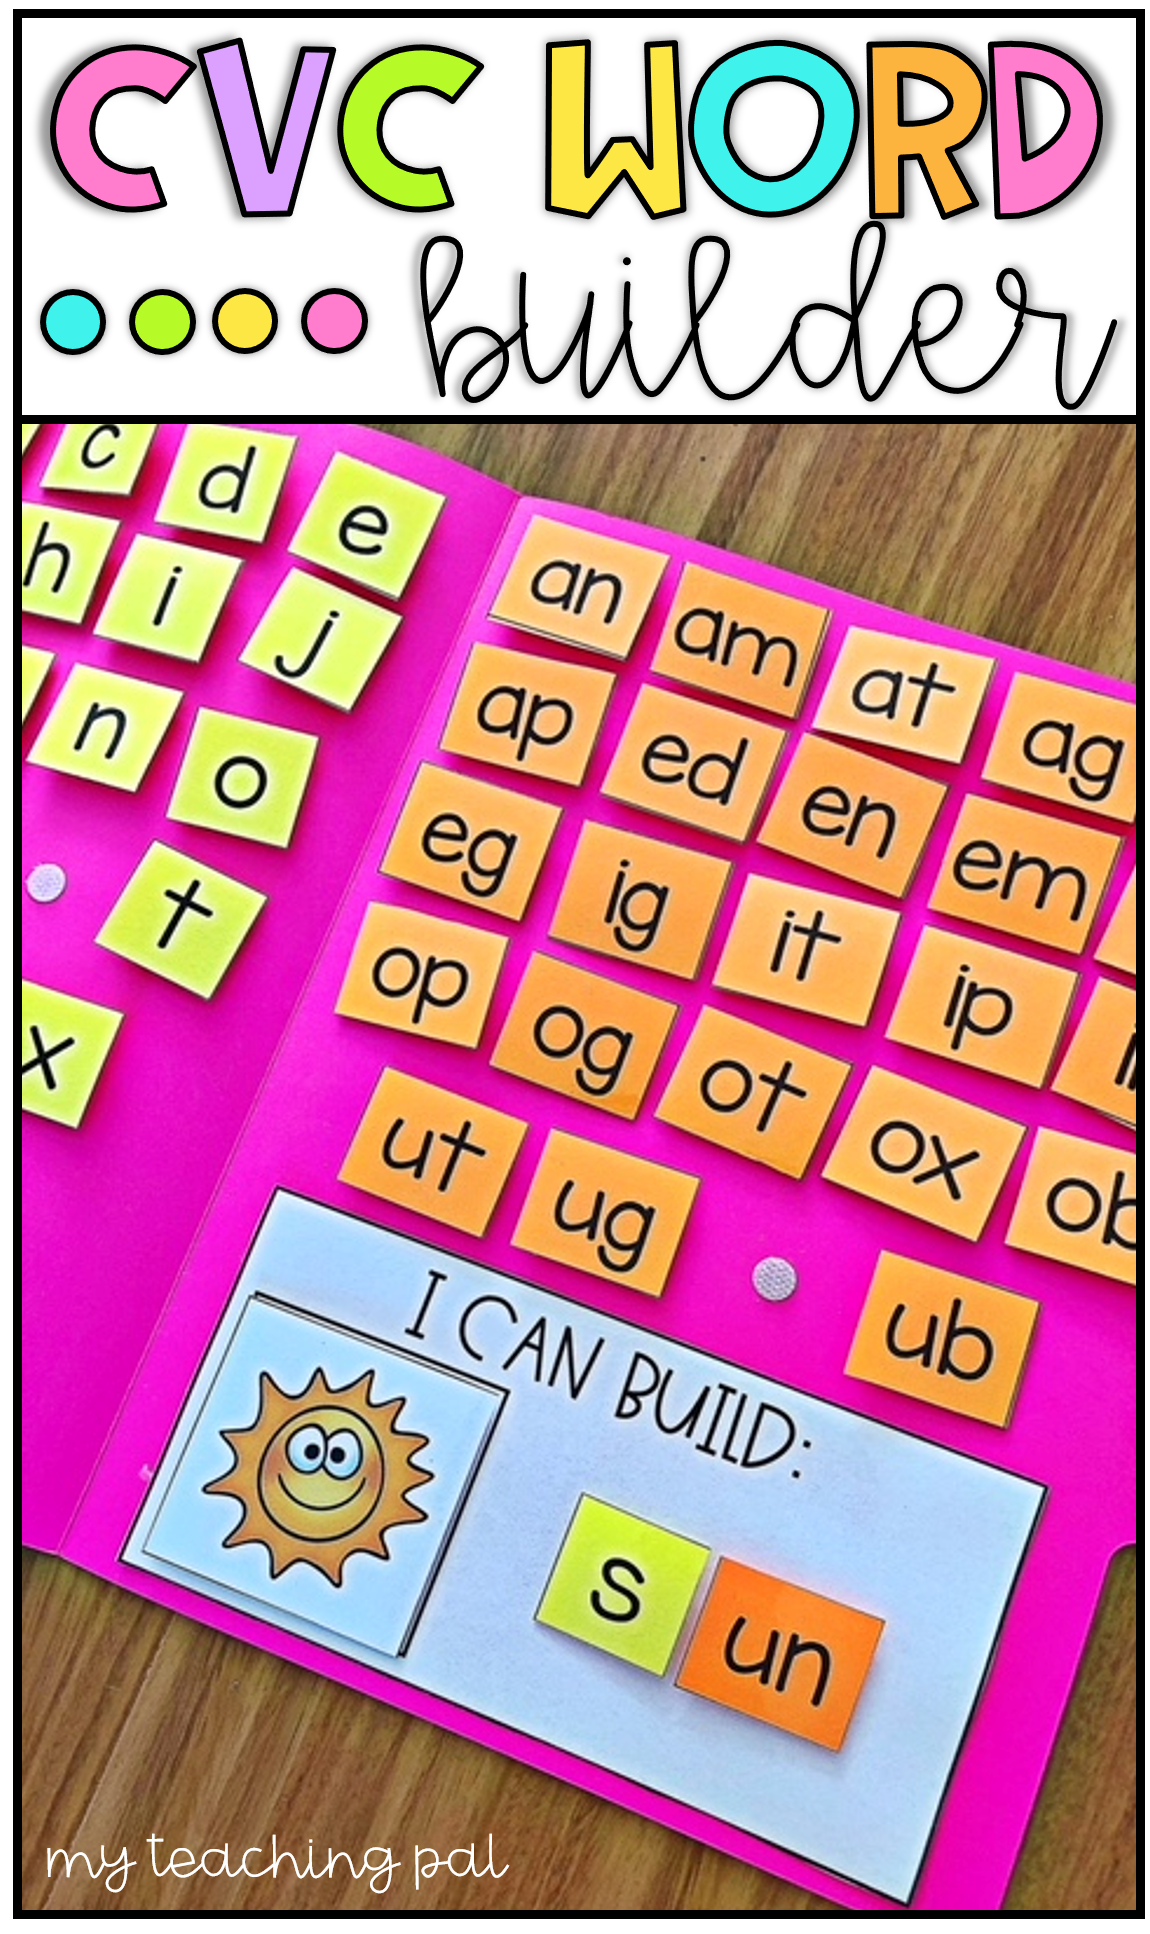 Cvc Word Builder Activity